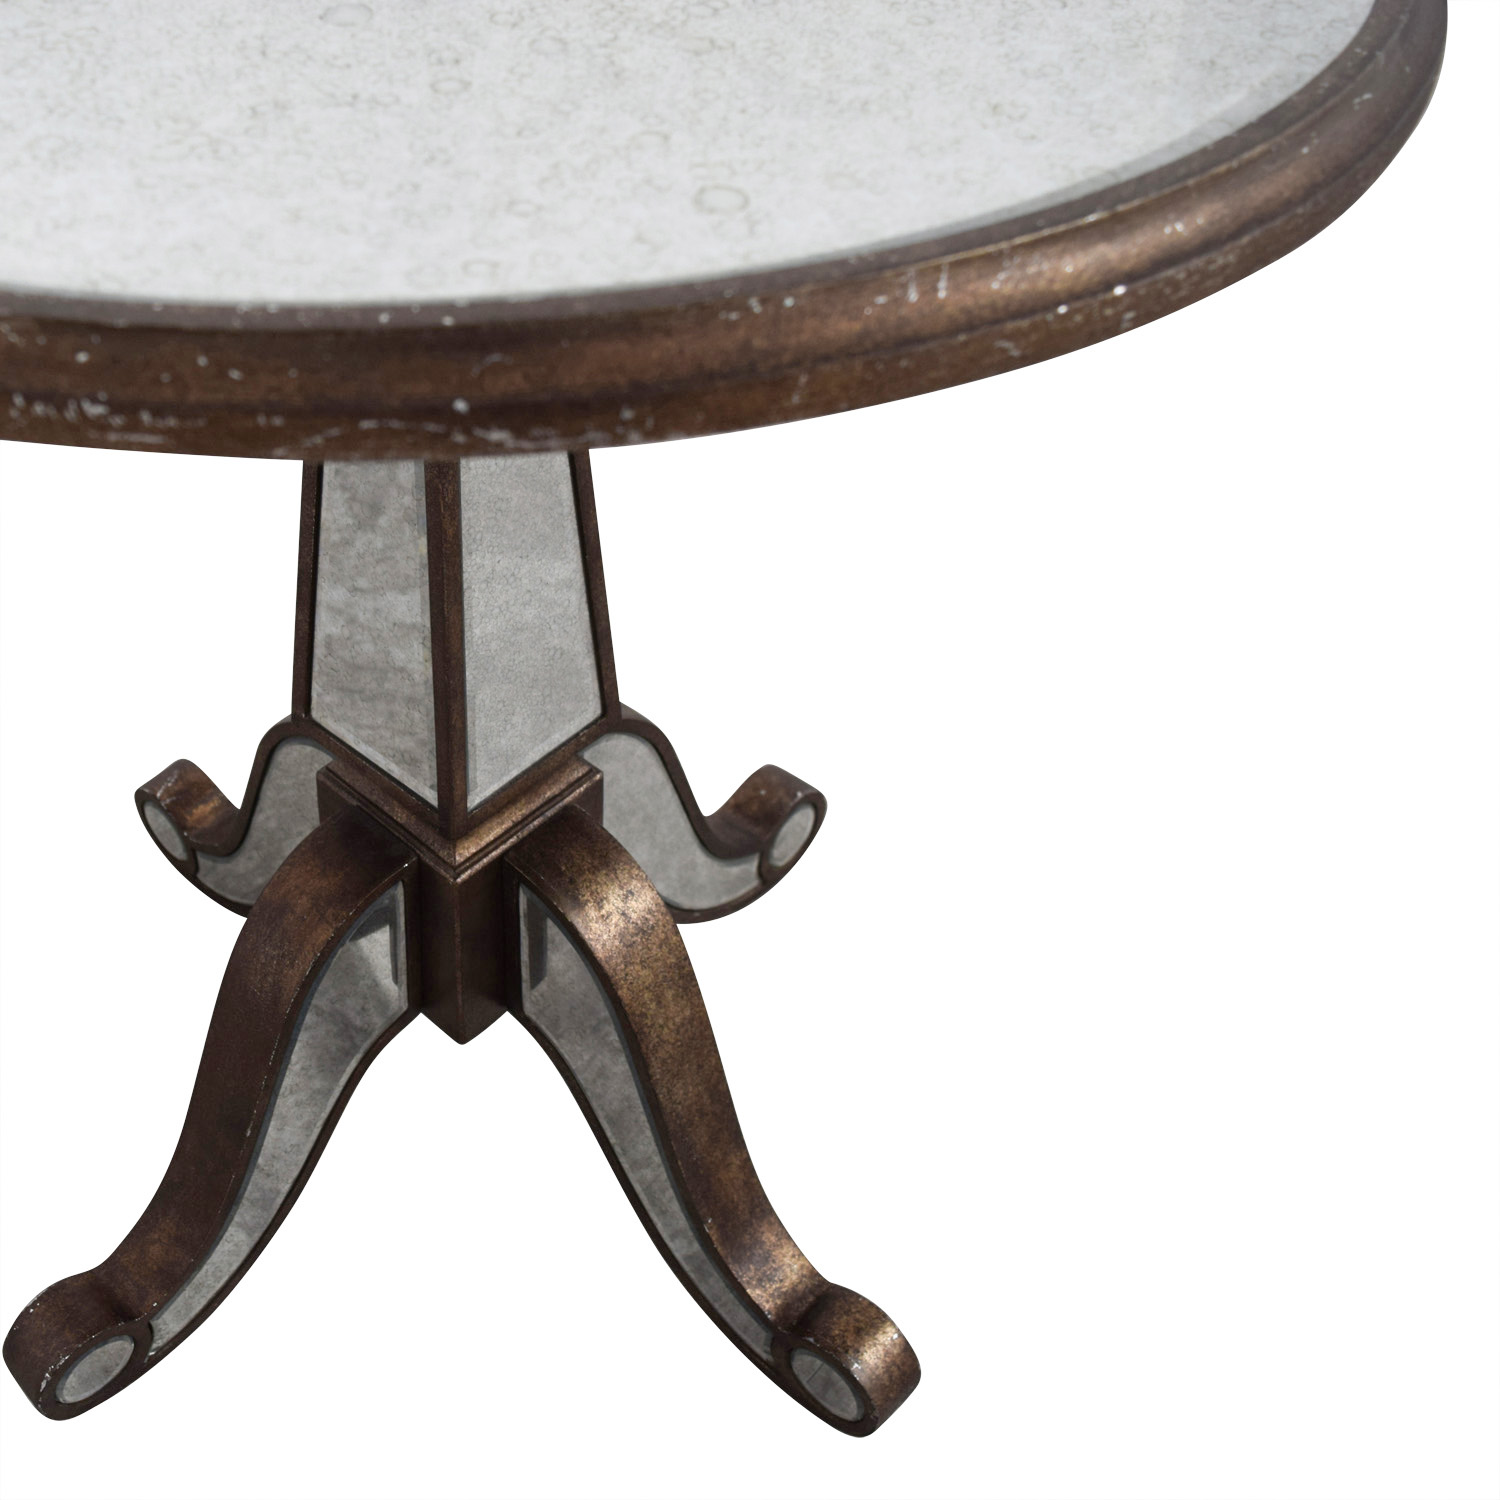 Horchow Horchow Michelle Round Mirrored Table for sale